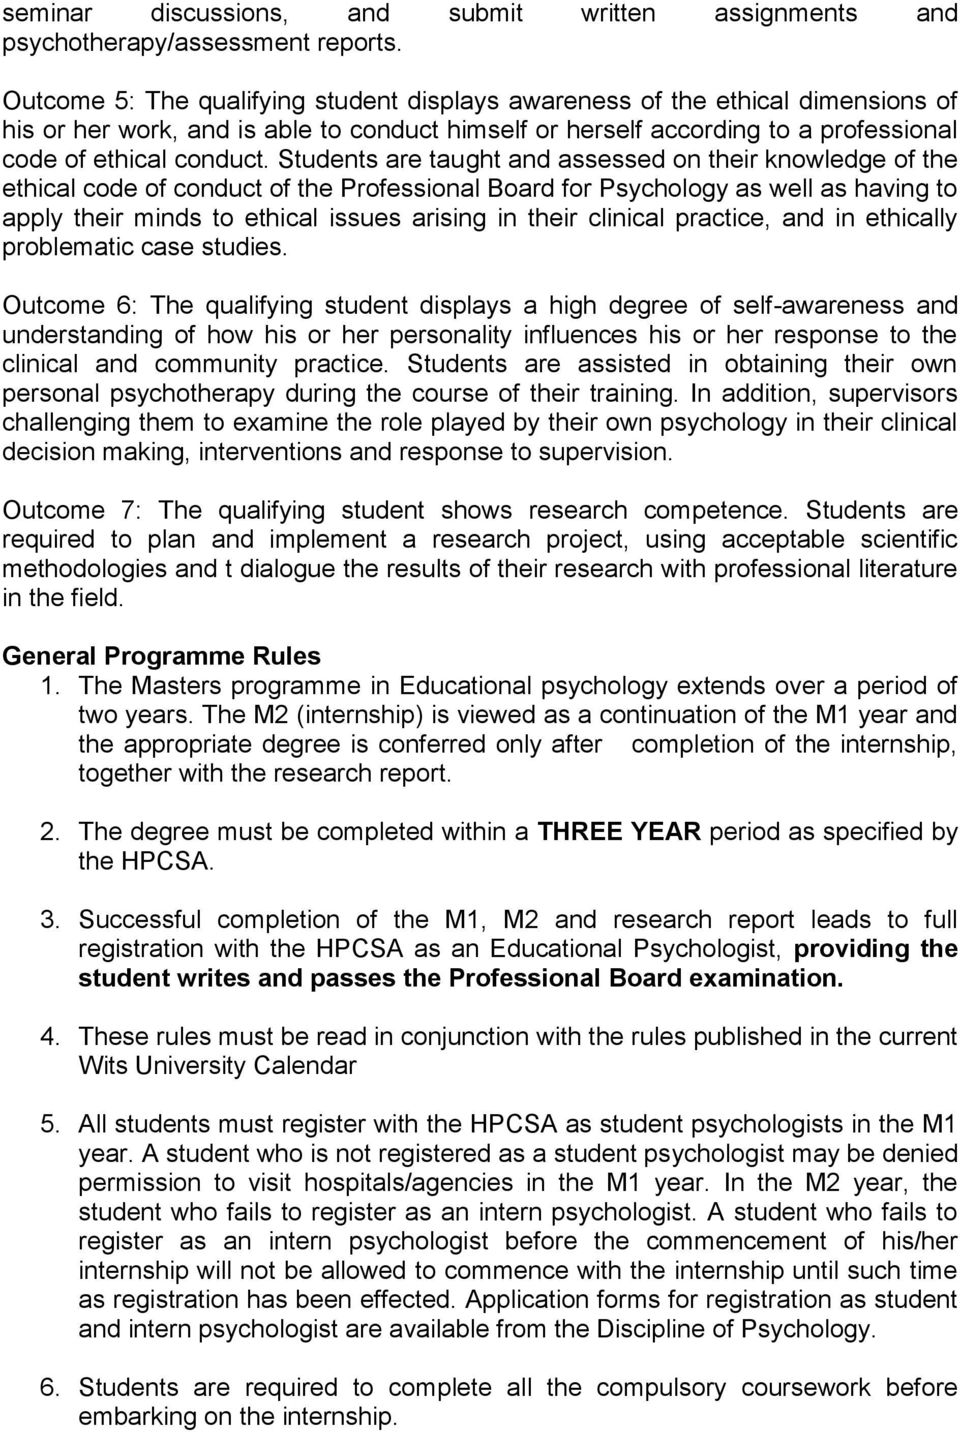 Students are taught and assessed on their knowledge of the ethical code of conduct of the Professional Board for Psychology as well as having to apply their minds to ethical issues arising in their